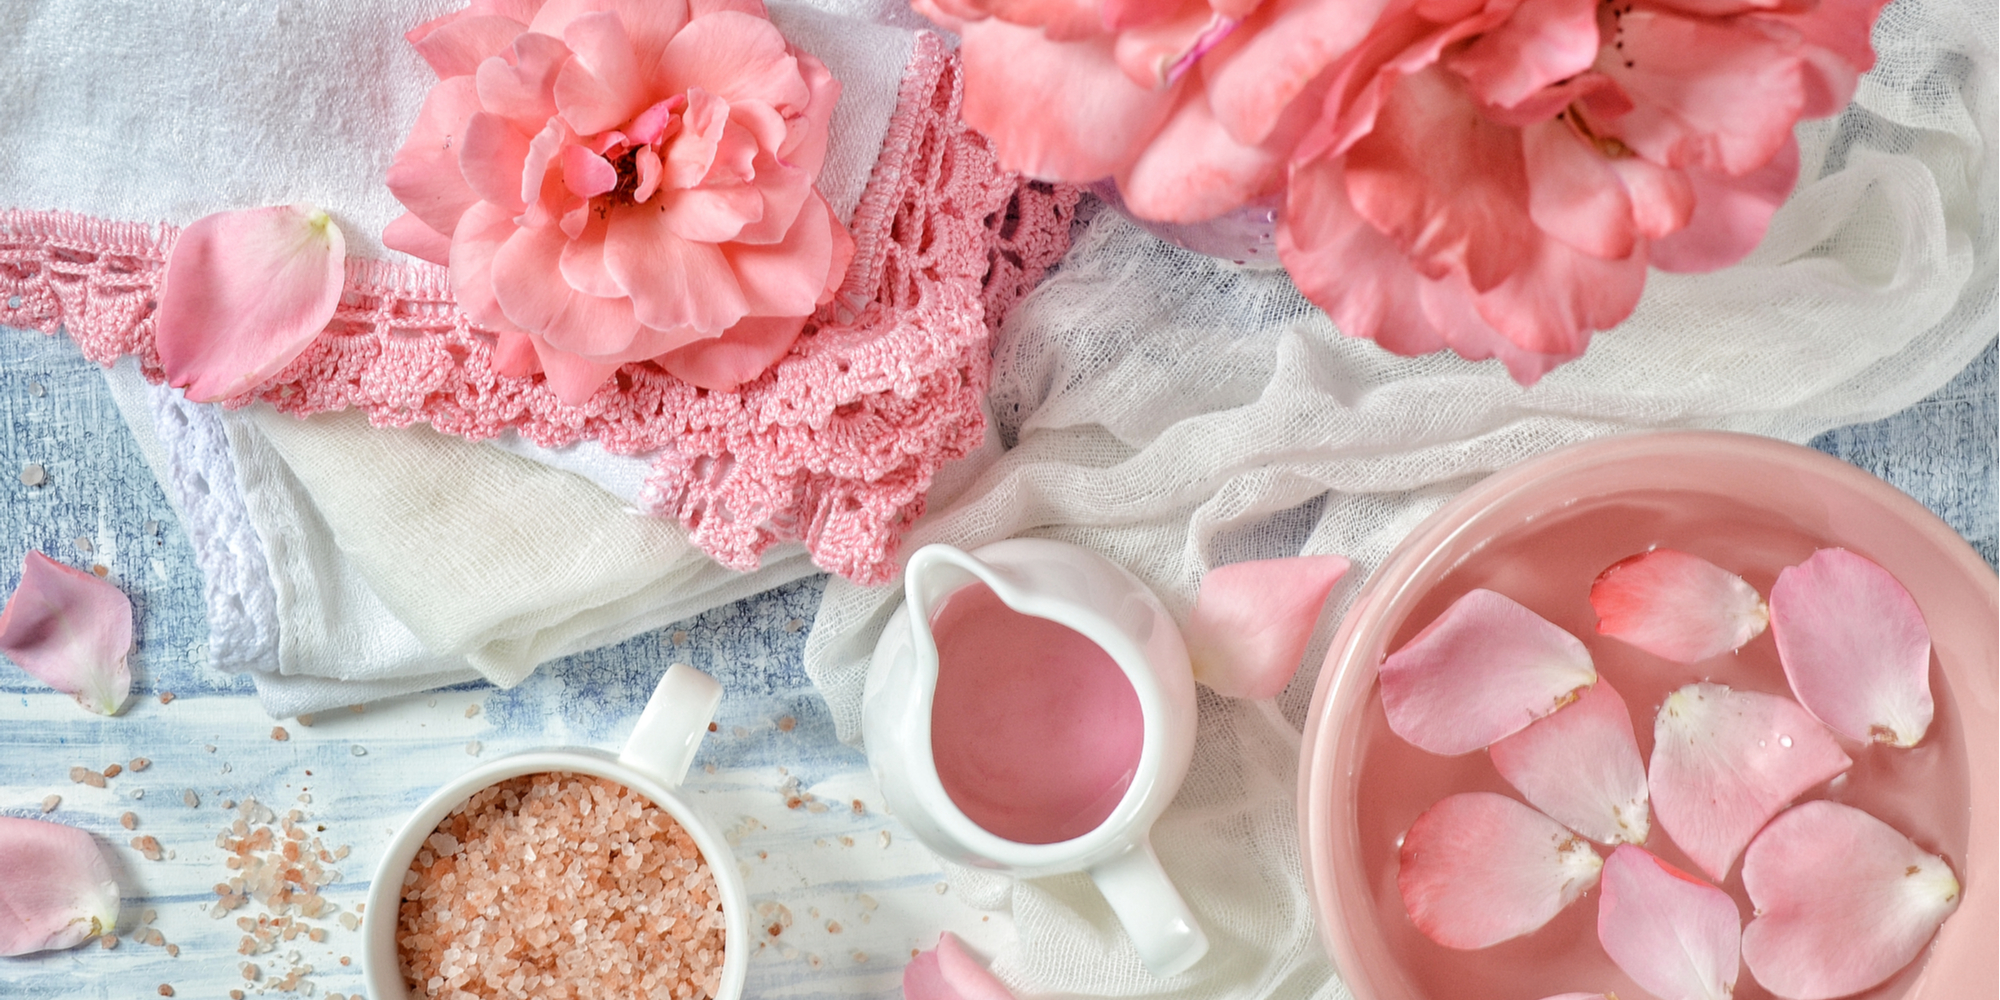 If you have peonies that are growing in your garden, you need to make DIY bath salts with them. Trust me, you will love the way they make you feel.